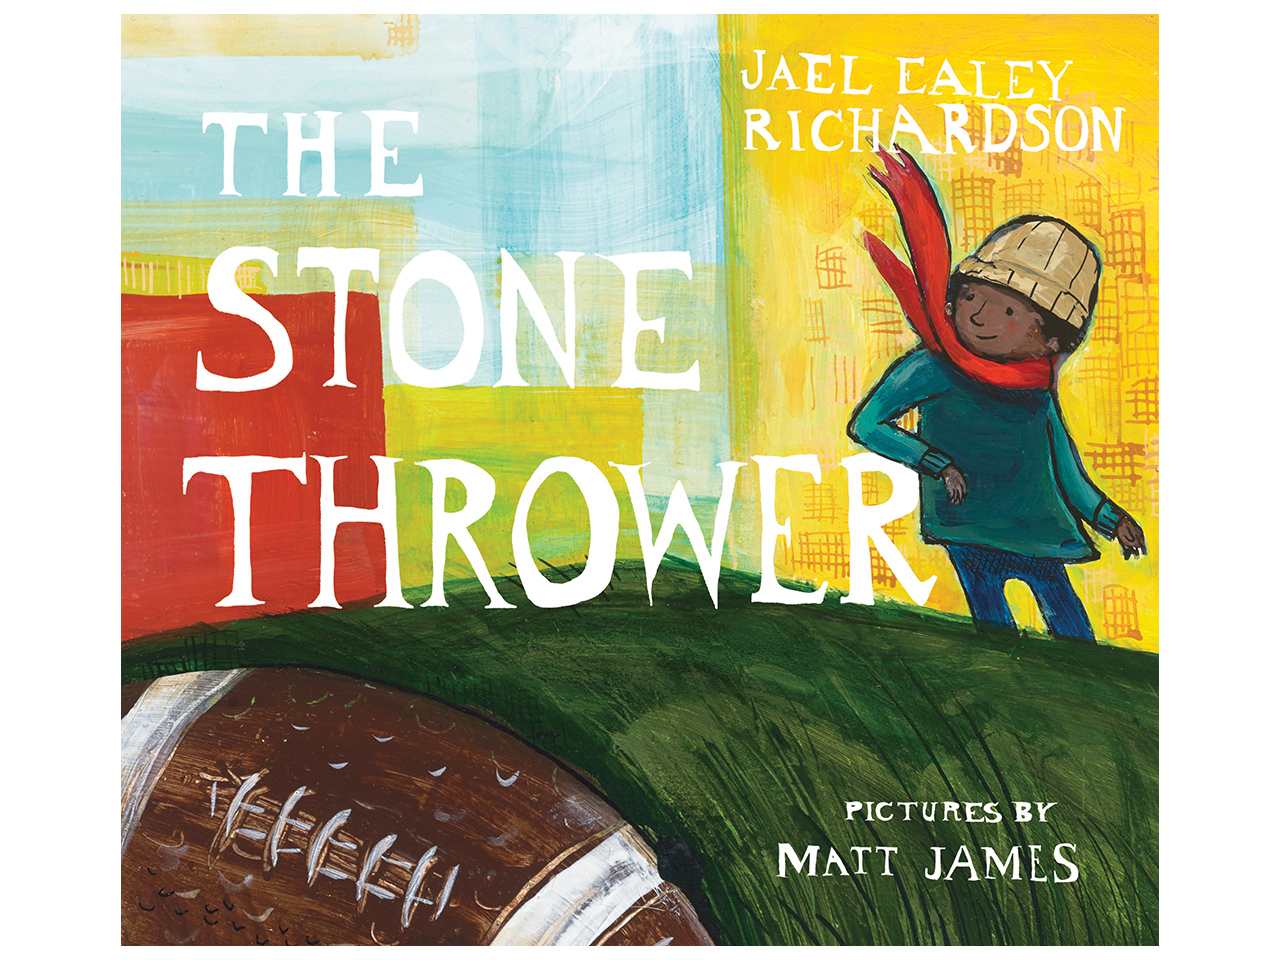 Cover art for the book, The Stone Thrower